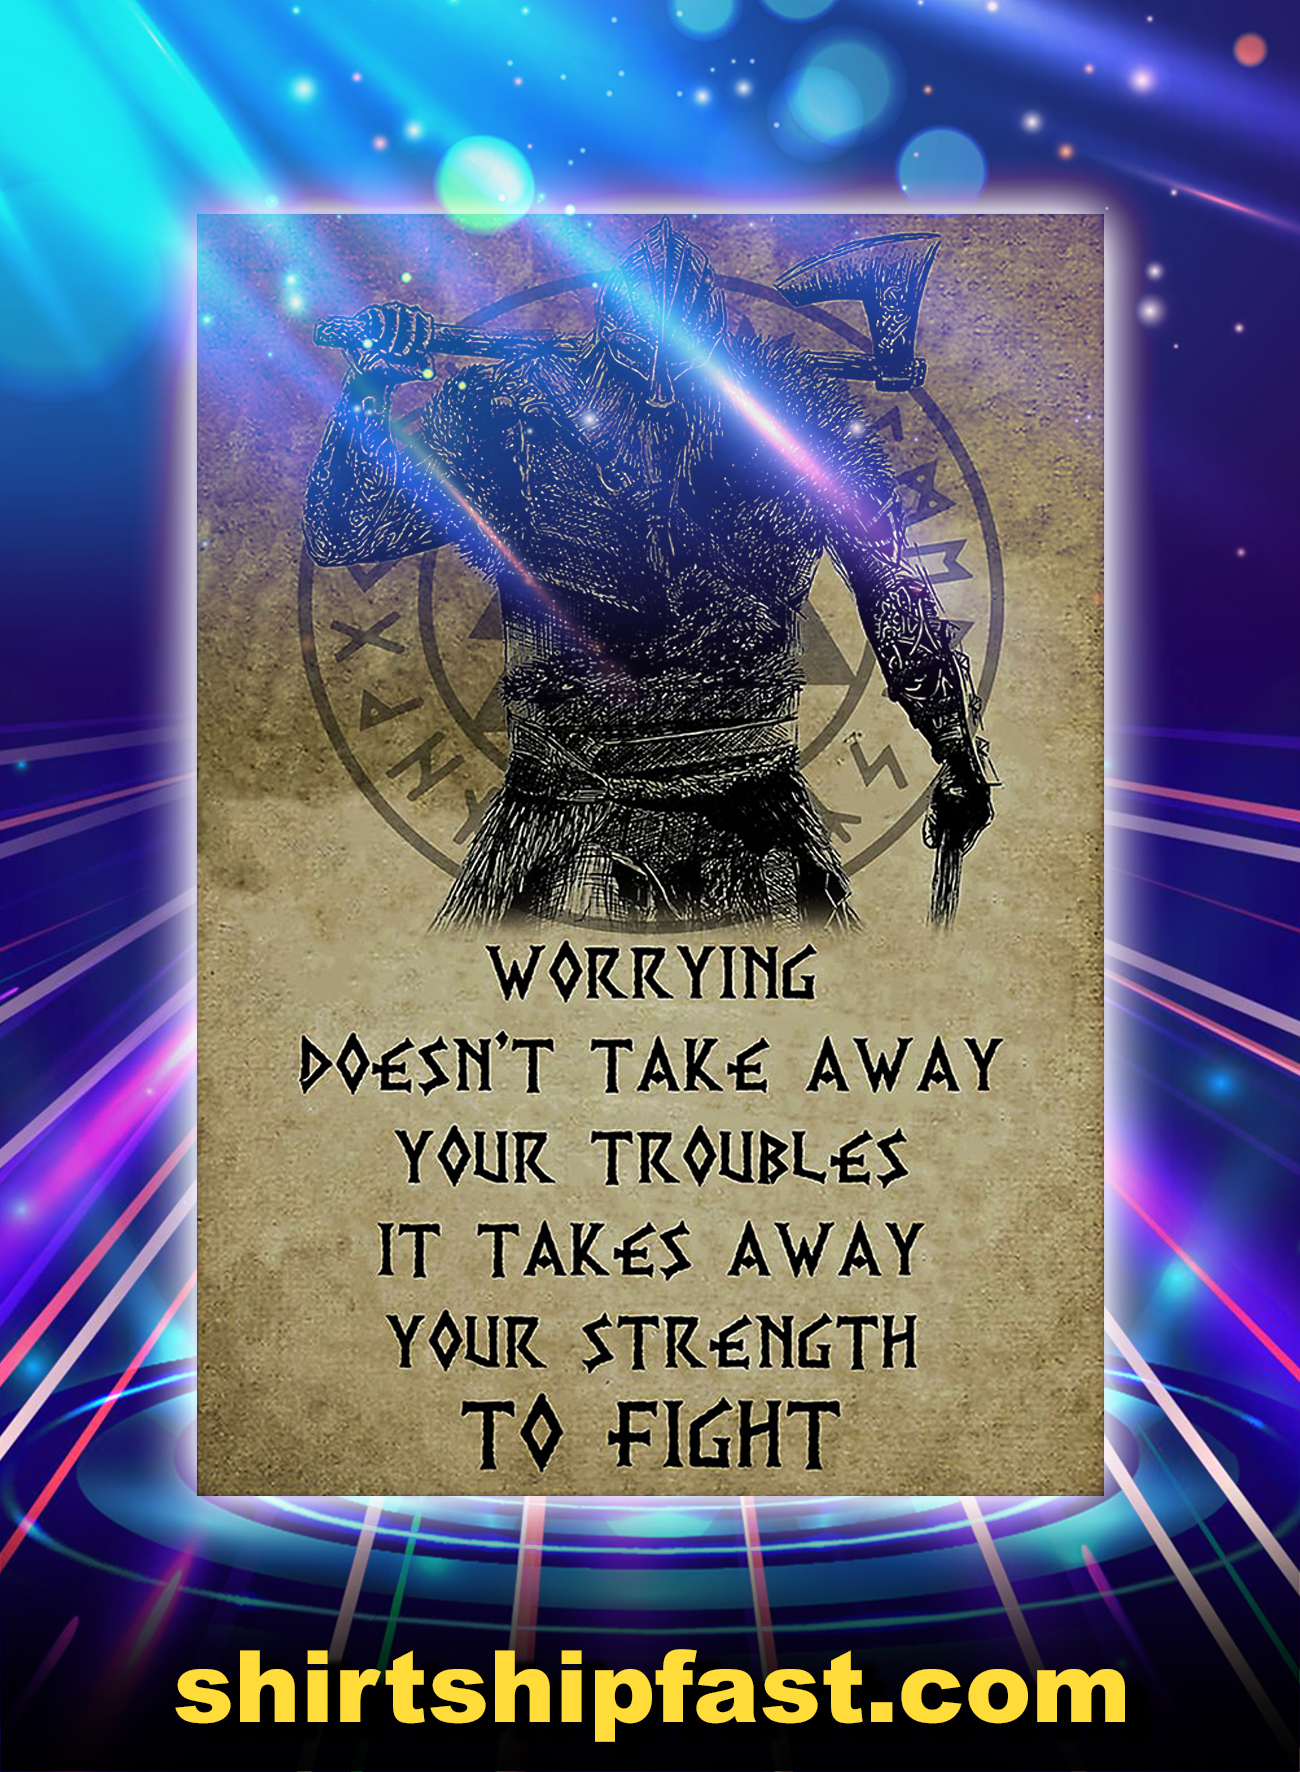 Viking Worrying Doesn't Take Away Your Troubles It Takes Away Your Strength To Fight Poster - A4